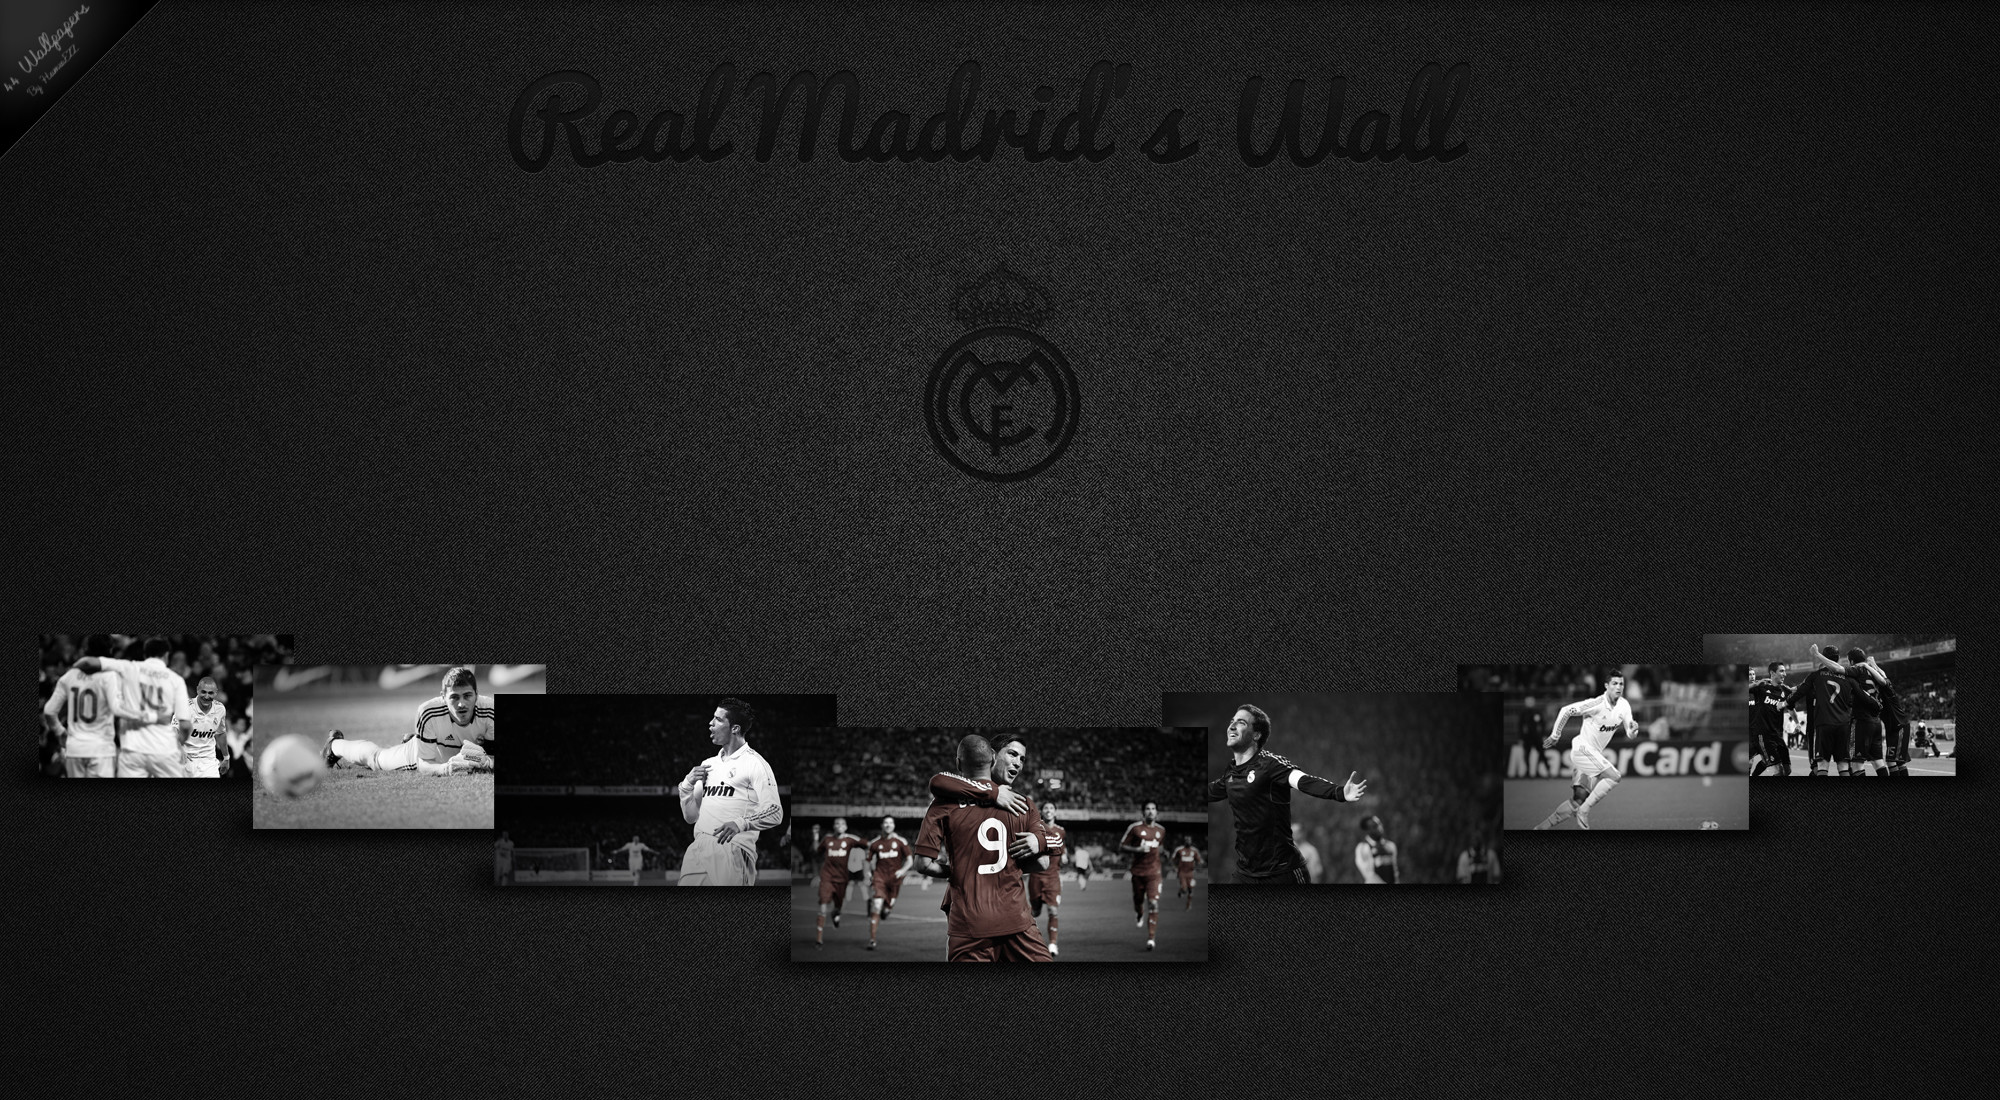 Real madrid's wallpapers by HamzaEzz Real madrid's wallpapers by HamzaEzz